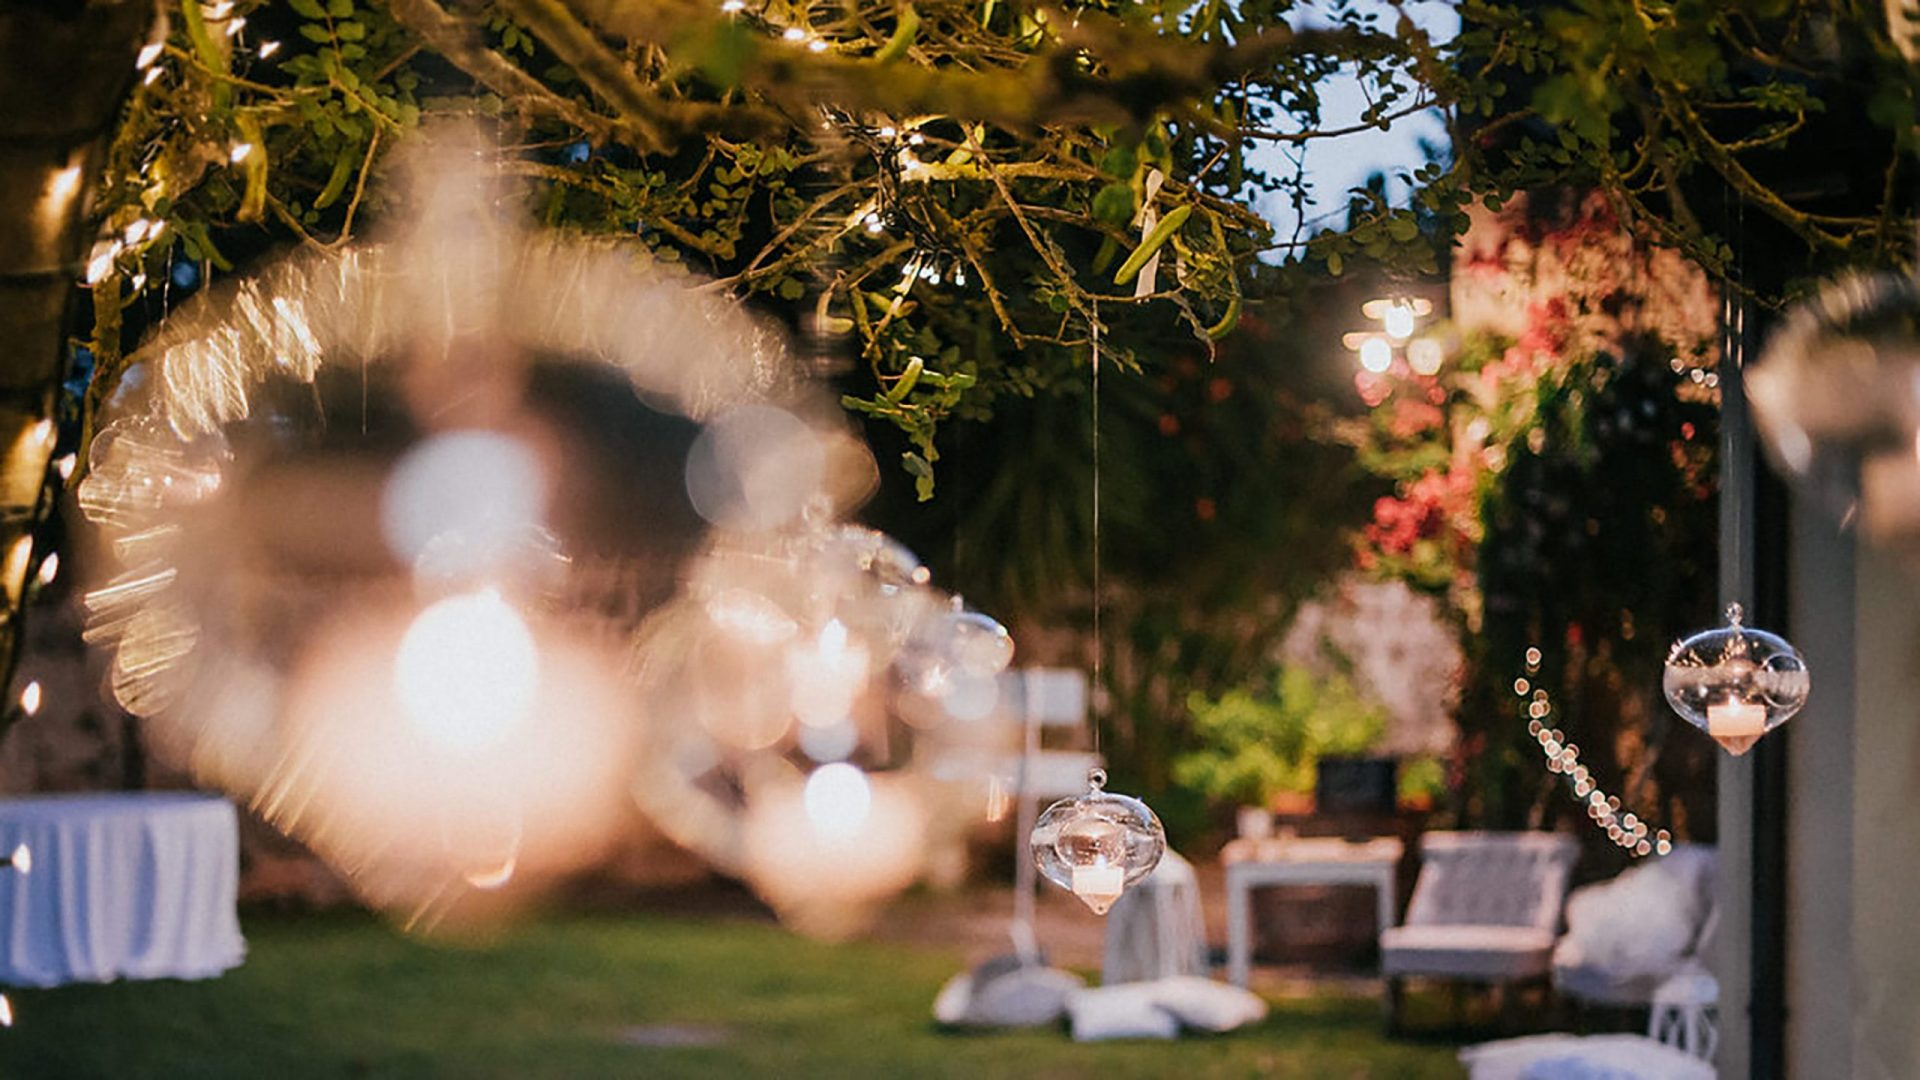 Ilaria e Giovanni, al fresco wedding decor